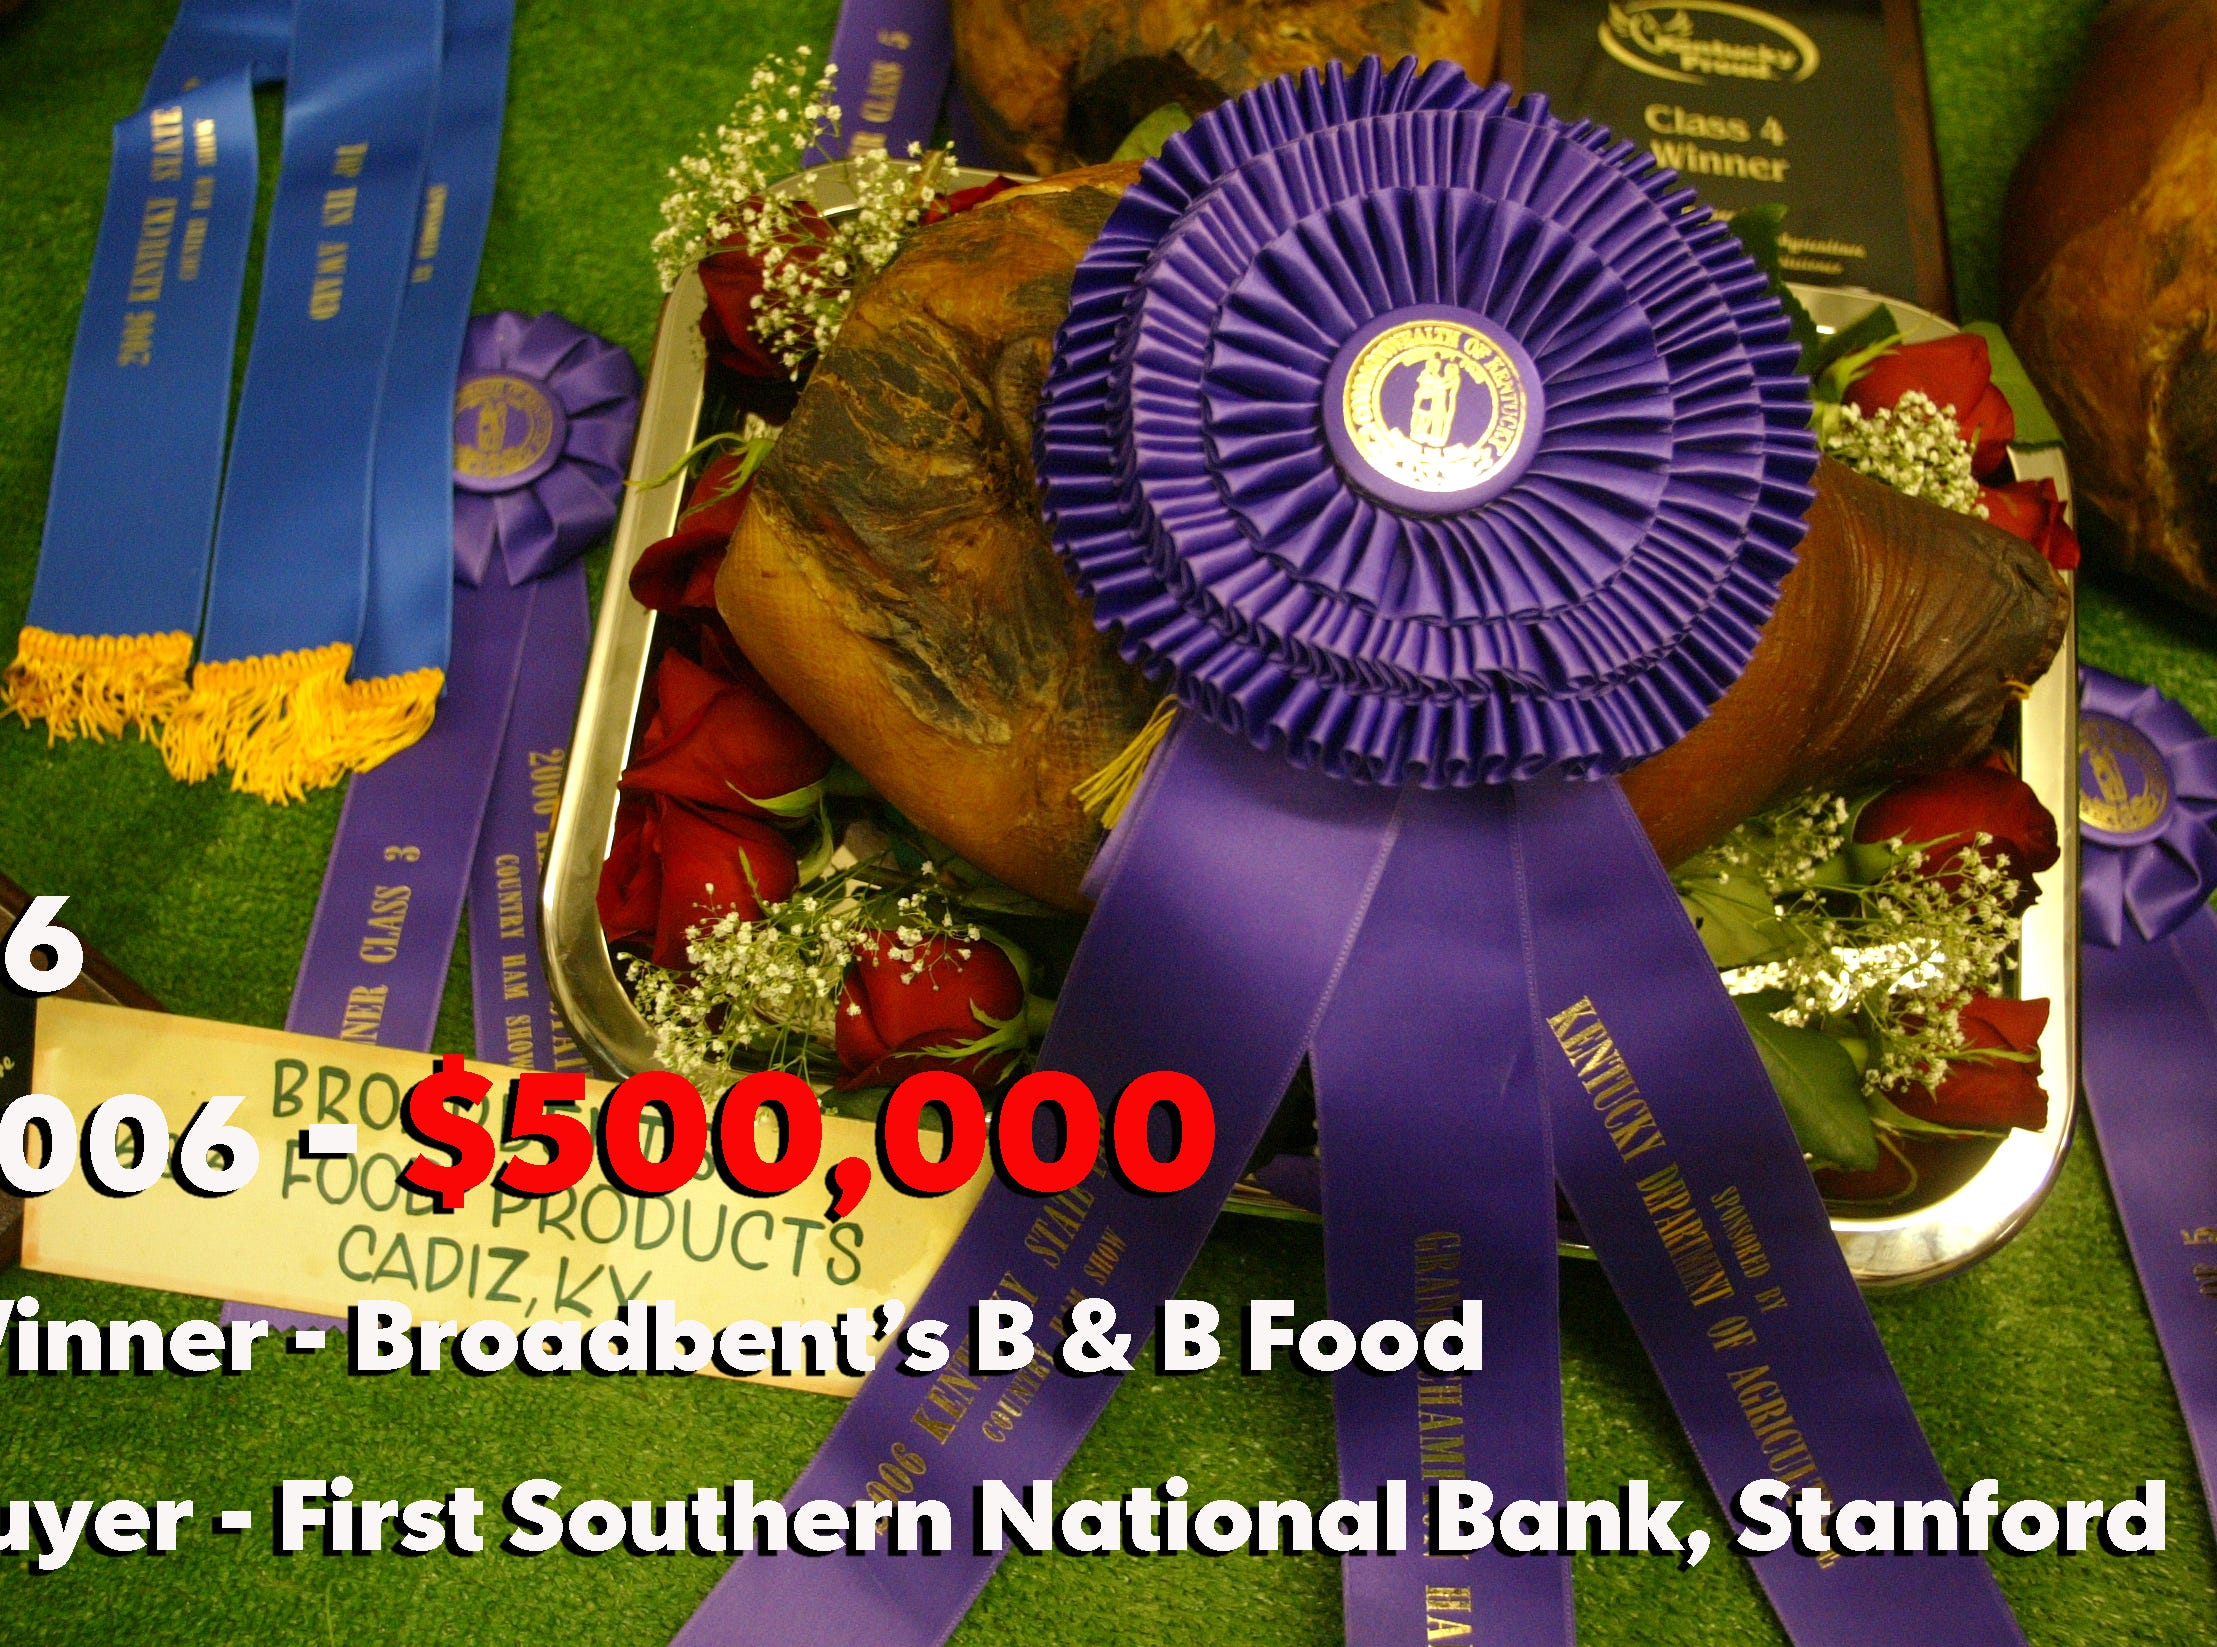 By Carla Winn, The Courier-Journal; Ronny and Beth Drennan's 17.26-pound ham brought a winning $500,000 bid from First Southern National Bank of Stanford, Ky. The money most likely will go to Crown Financial Ministries.